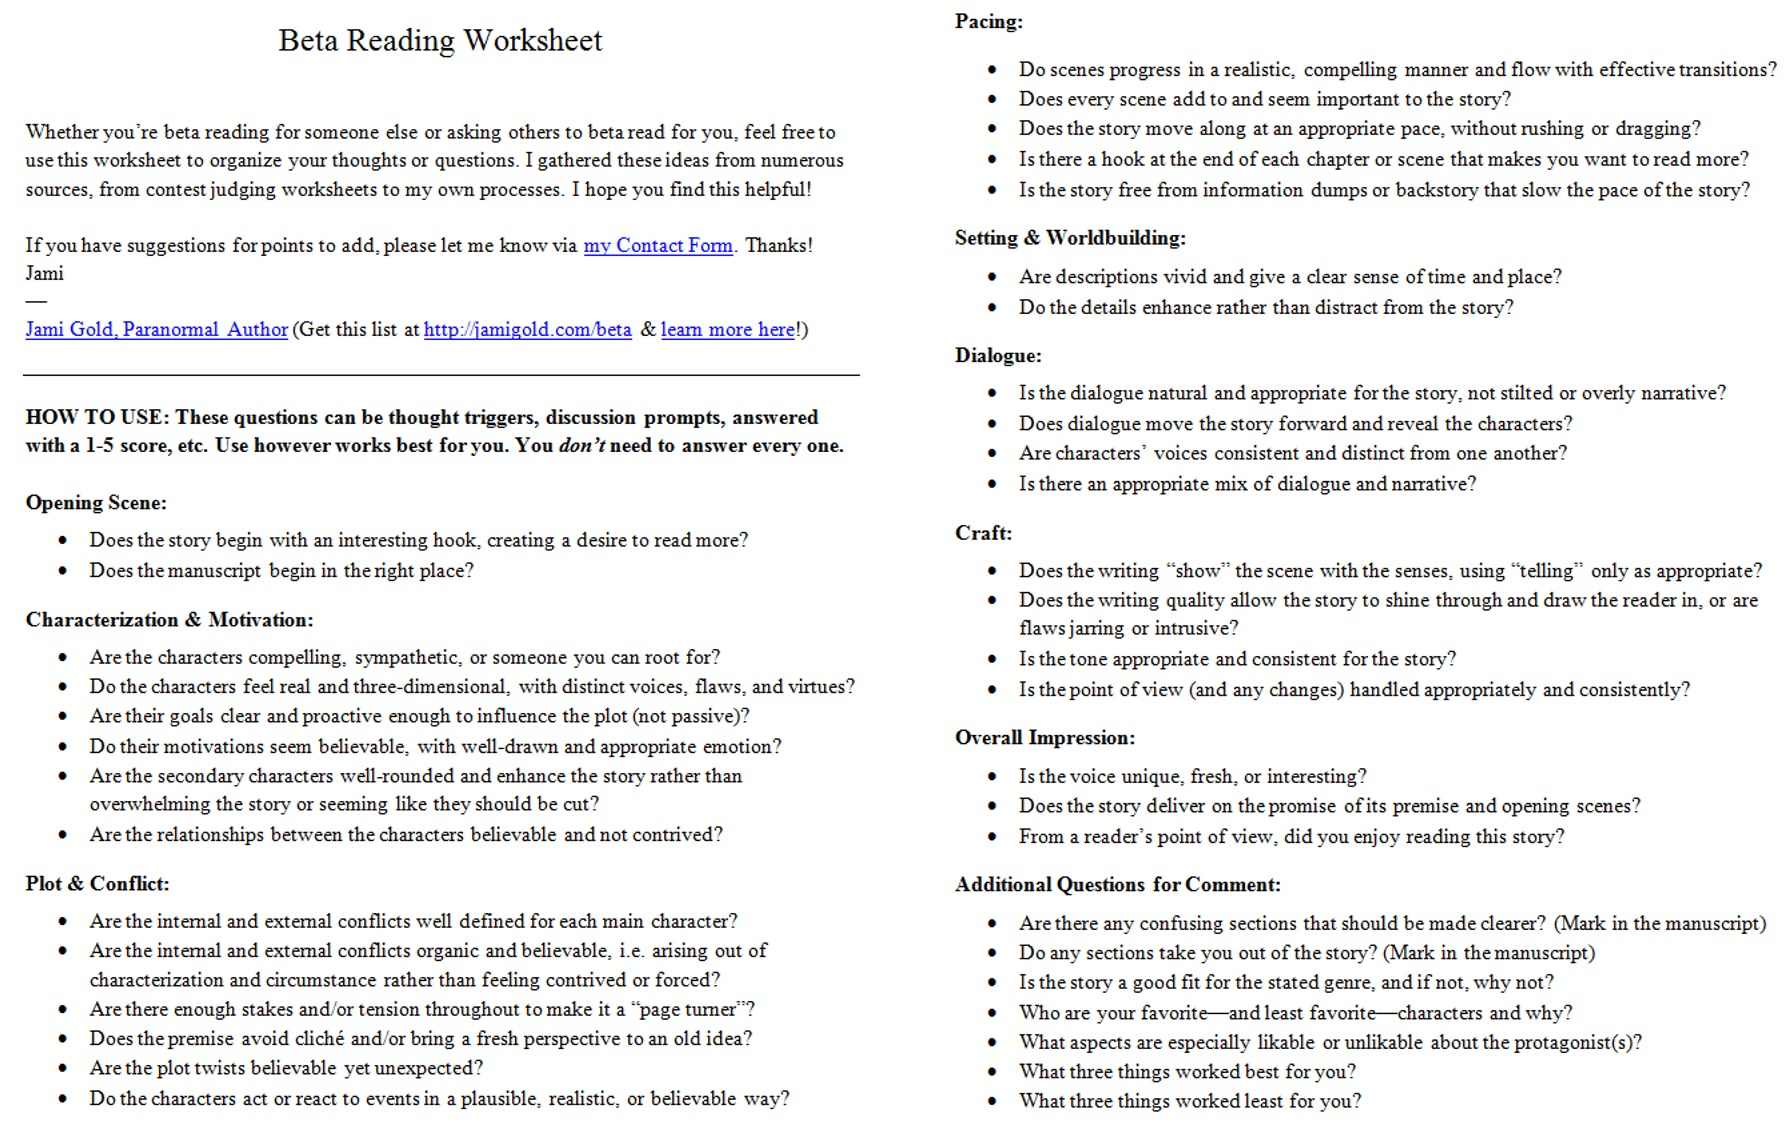 Introducing The Beta Reading Worksheet